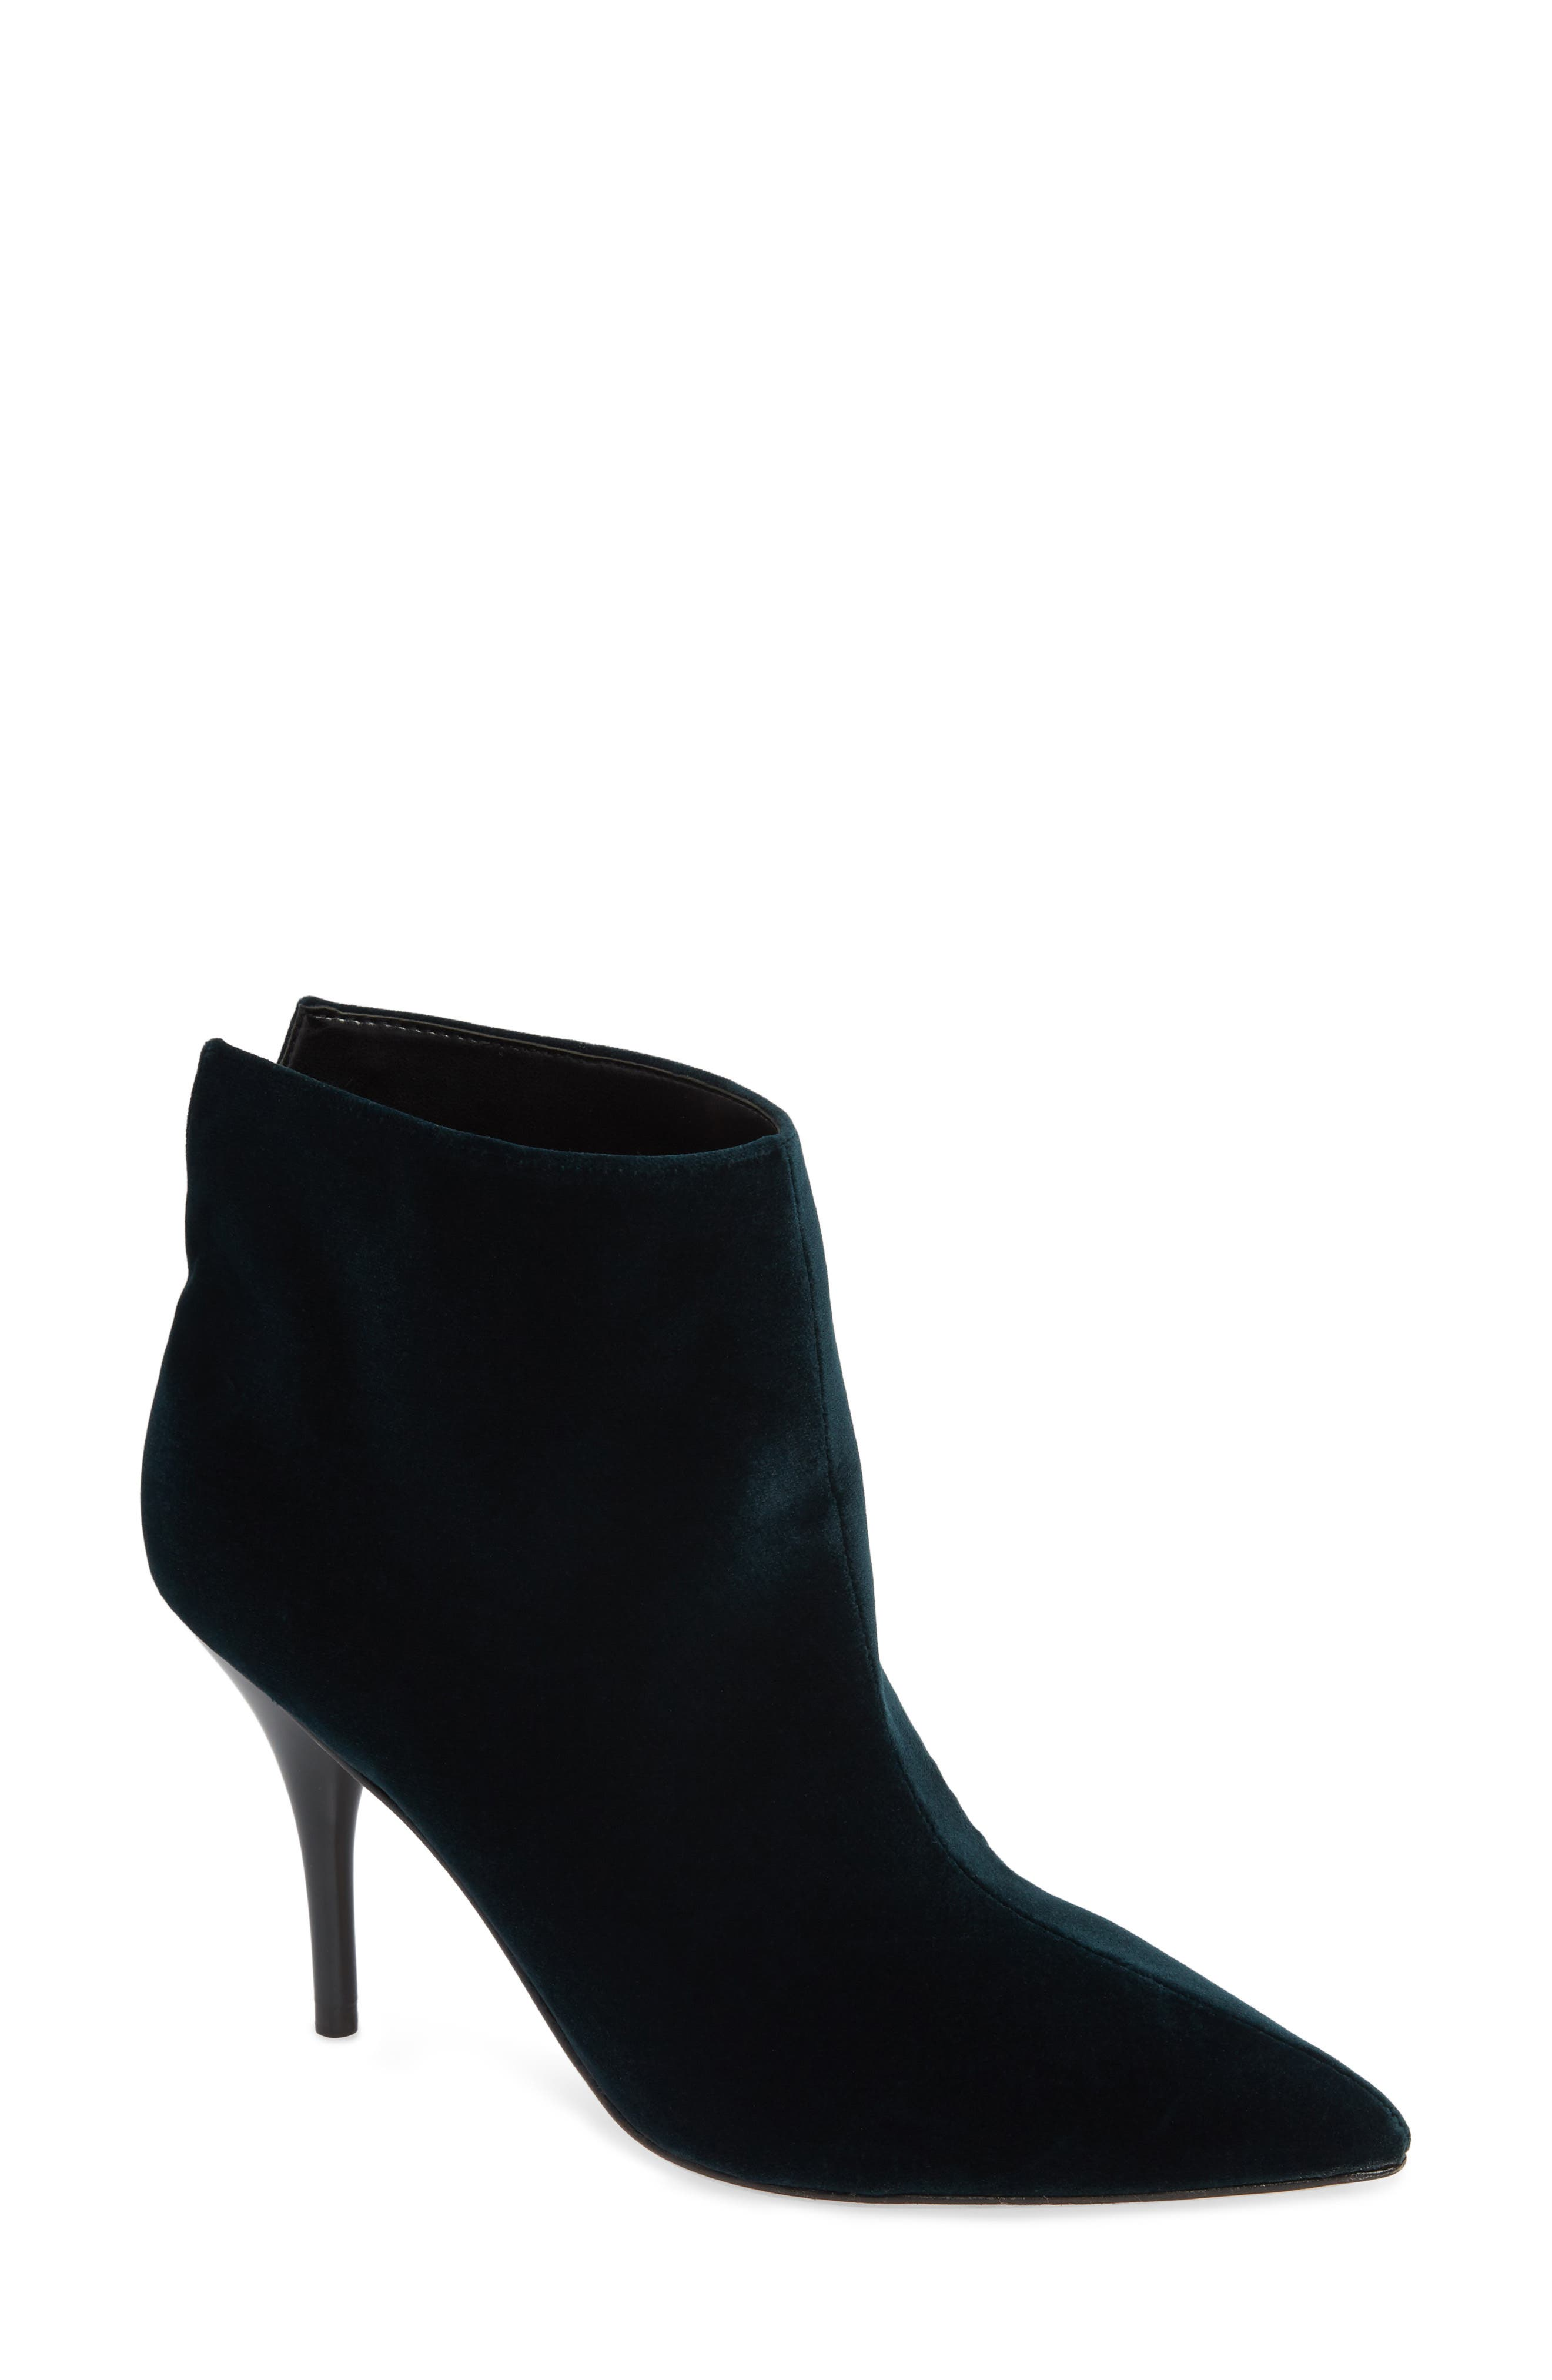 MARC FISHER LTD,                             Fenet Pointy Toe Bootie,                             Main thumbnail 1, color,                             SPRUCE FABRIC